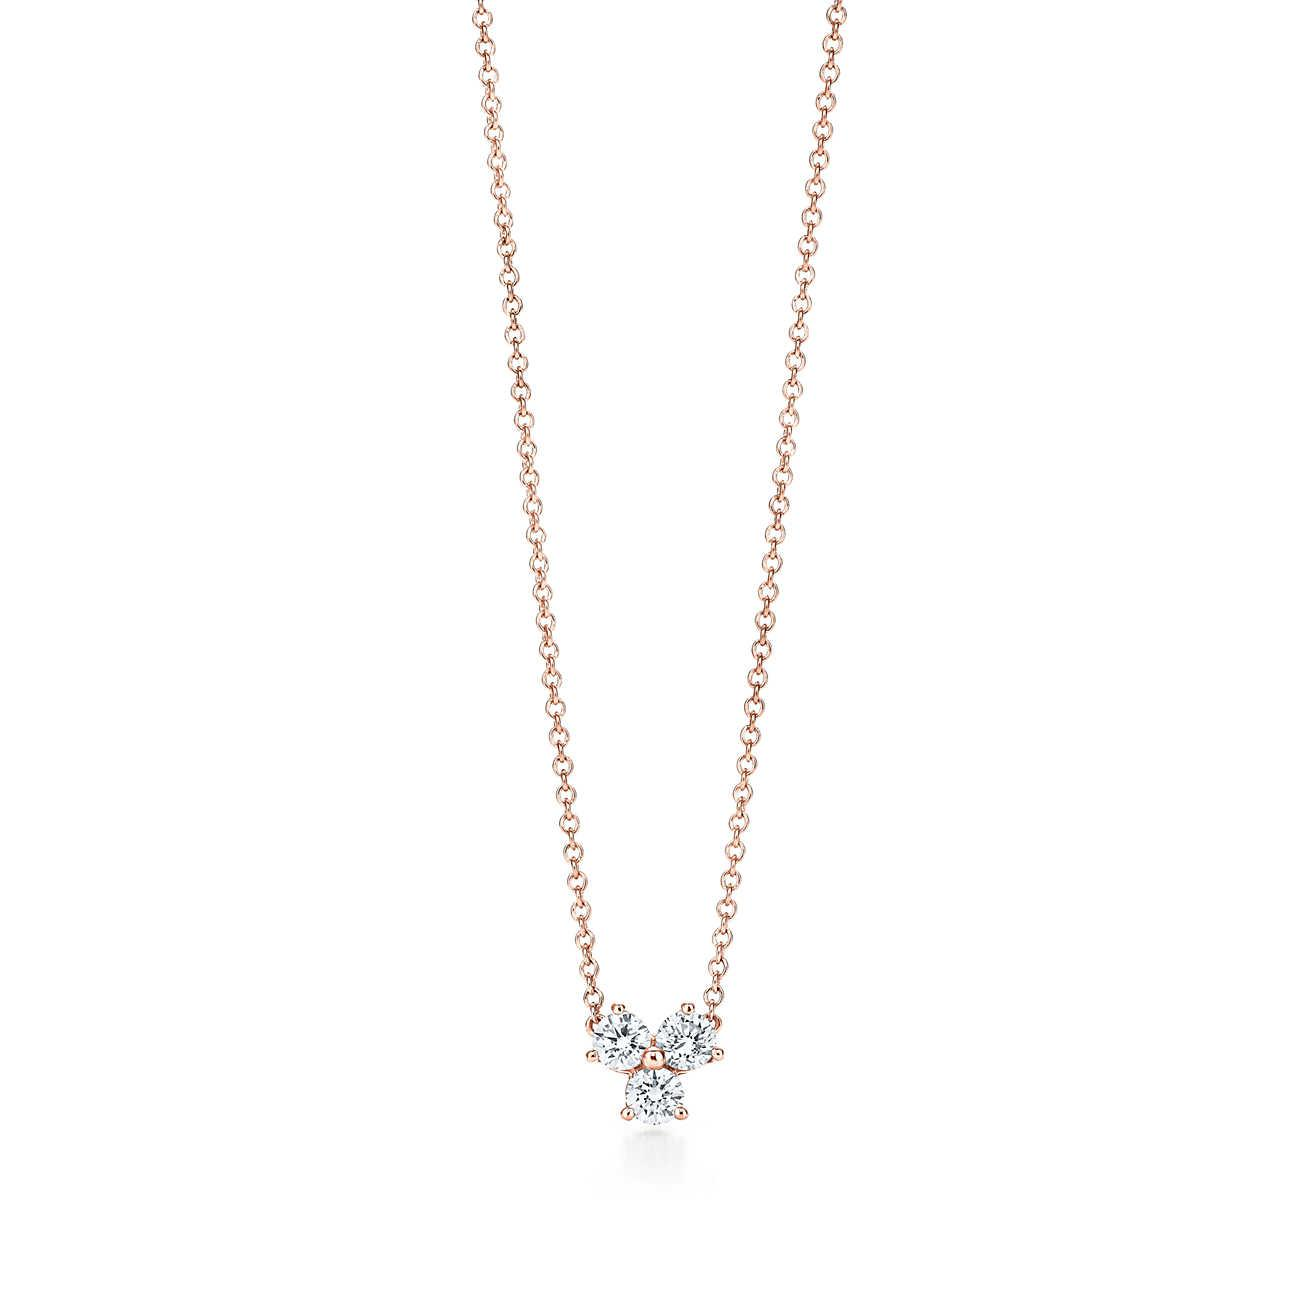 Tiffany solitaire diamond pendant in 18k rose gold - Size.17 Tiffany & Co.